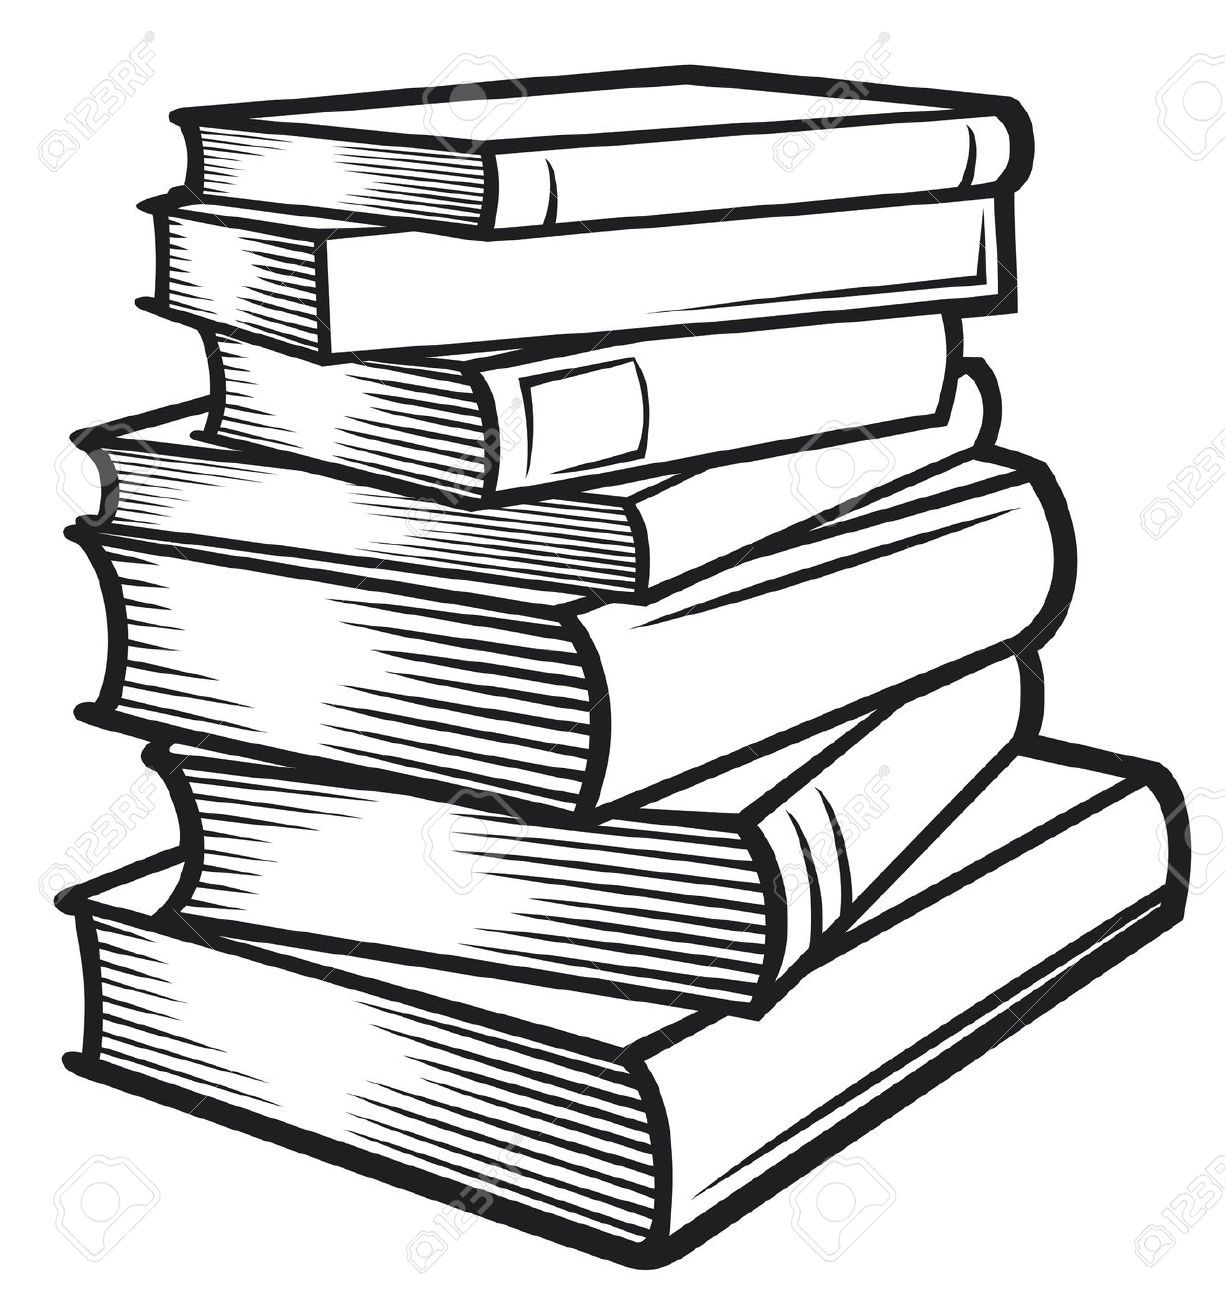 tall stack of books clipart black and white | bullet journals